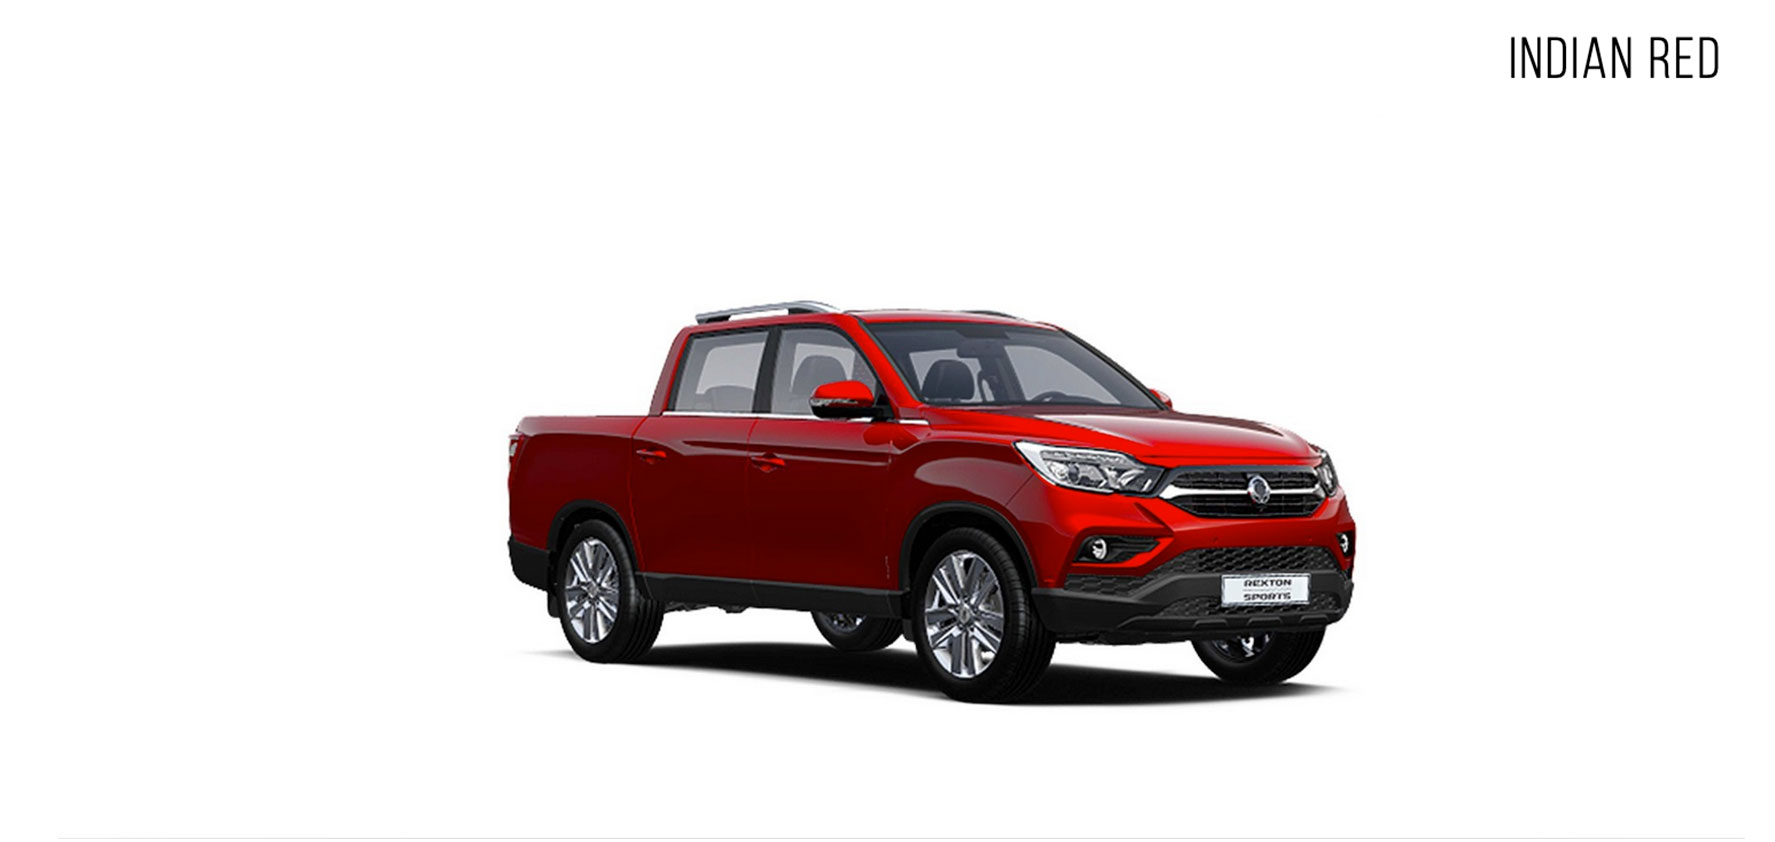 5-indian-red-rexton-sports-ssangyong-vercelli